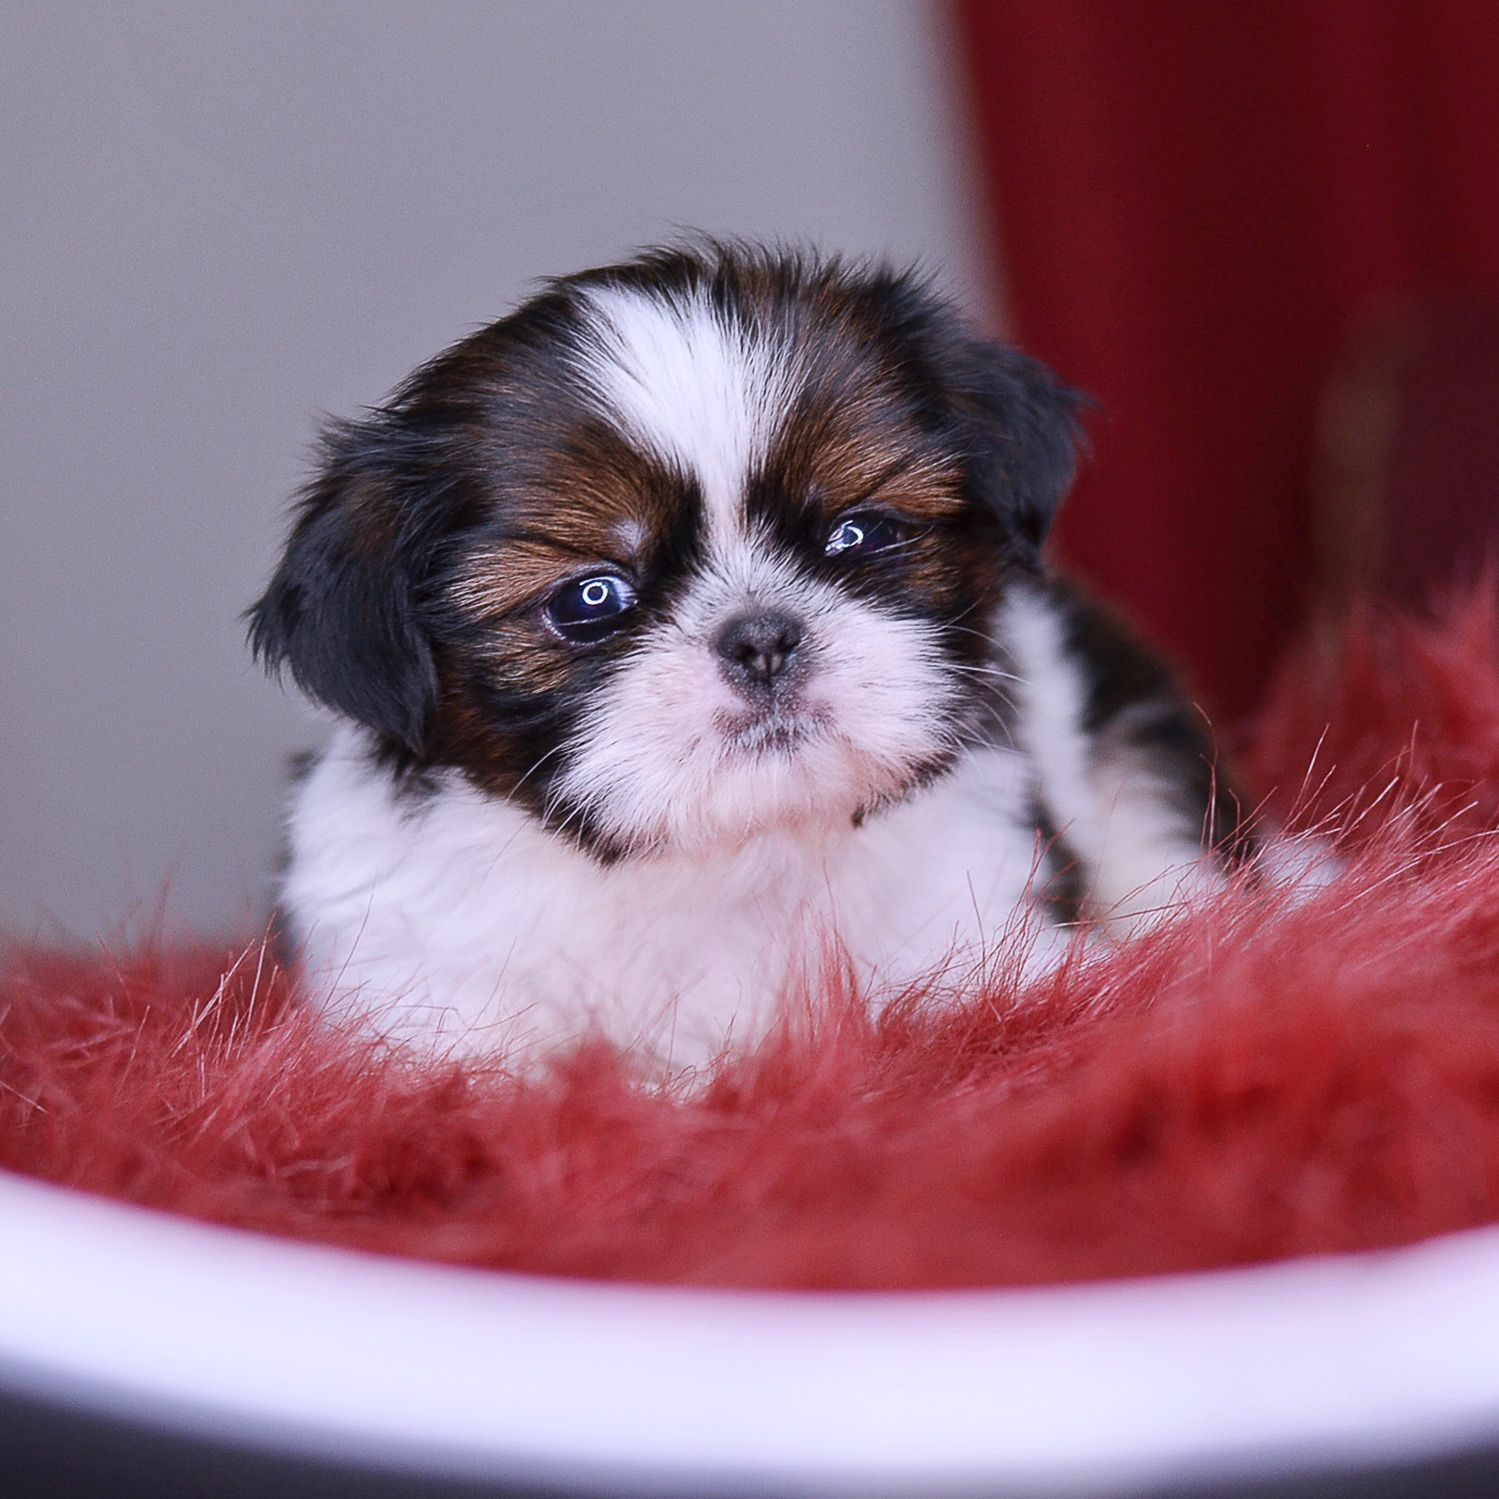 Imperial Shih Tzu Wasabi At 1 Month Really Cute Puppies Shih Tzu Puppy Imperial Shih Tzu